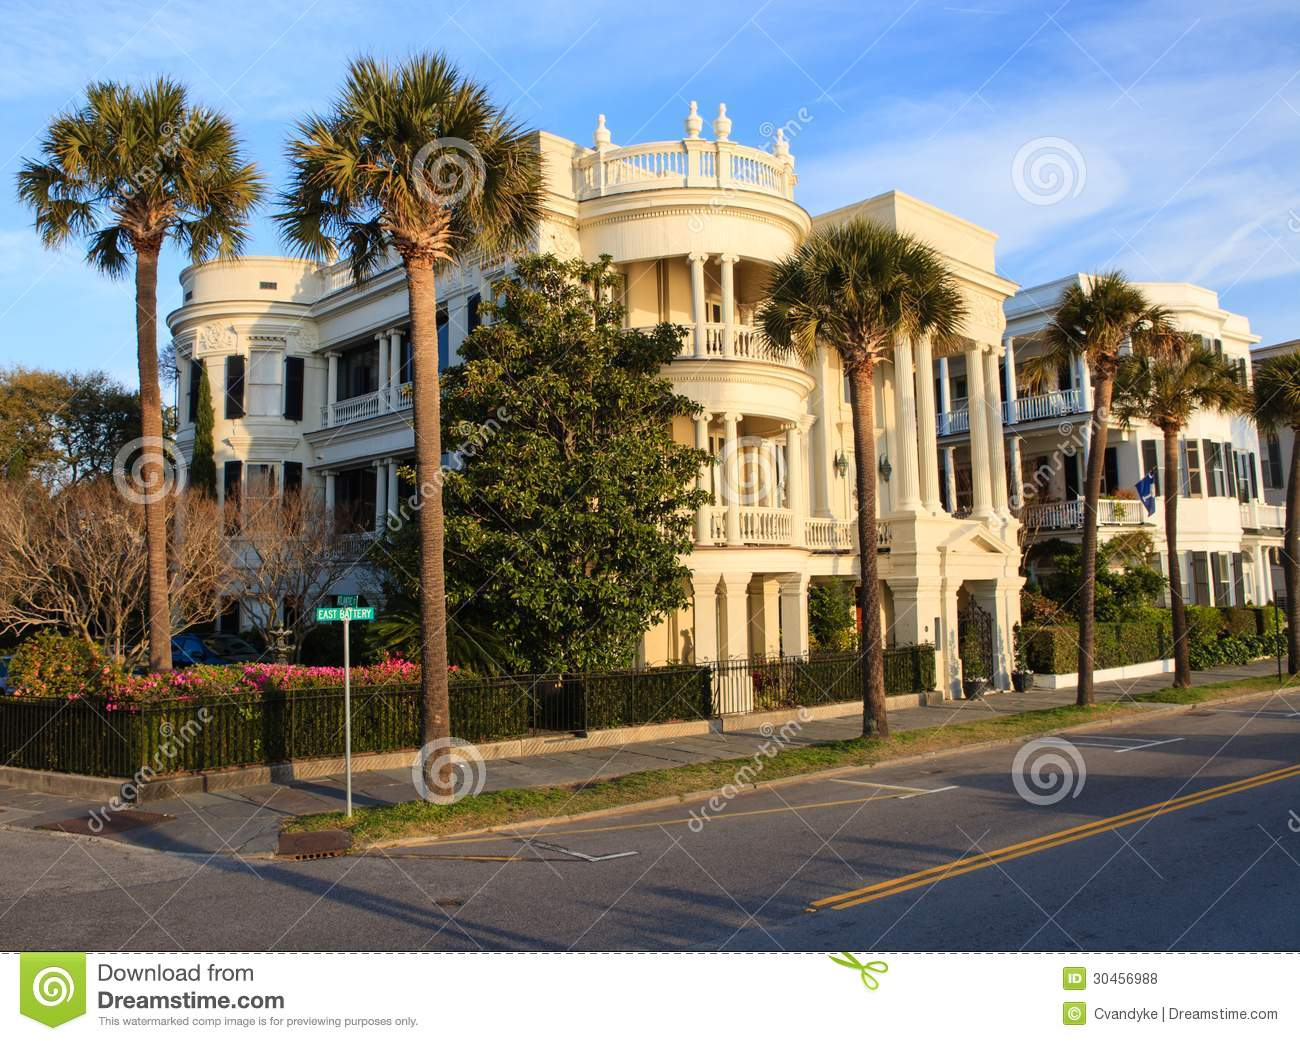 Royalty Free Stock Photo Southern Homes Historic Style Charleston South Carolina Image34740995 also Impressive Beach Houses n 3368205 additionally Royalty Free Stock Photos Porcher Simonds Historical House Charleston Sc East Bay Street Battery District Was Remodeled Renaissance Image30456988 in addition Resort Activities moreover Google Mountain View C us Update California Bjarke Ingels Heatherwick Studio 03 01 2017. on charleston house plans